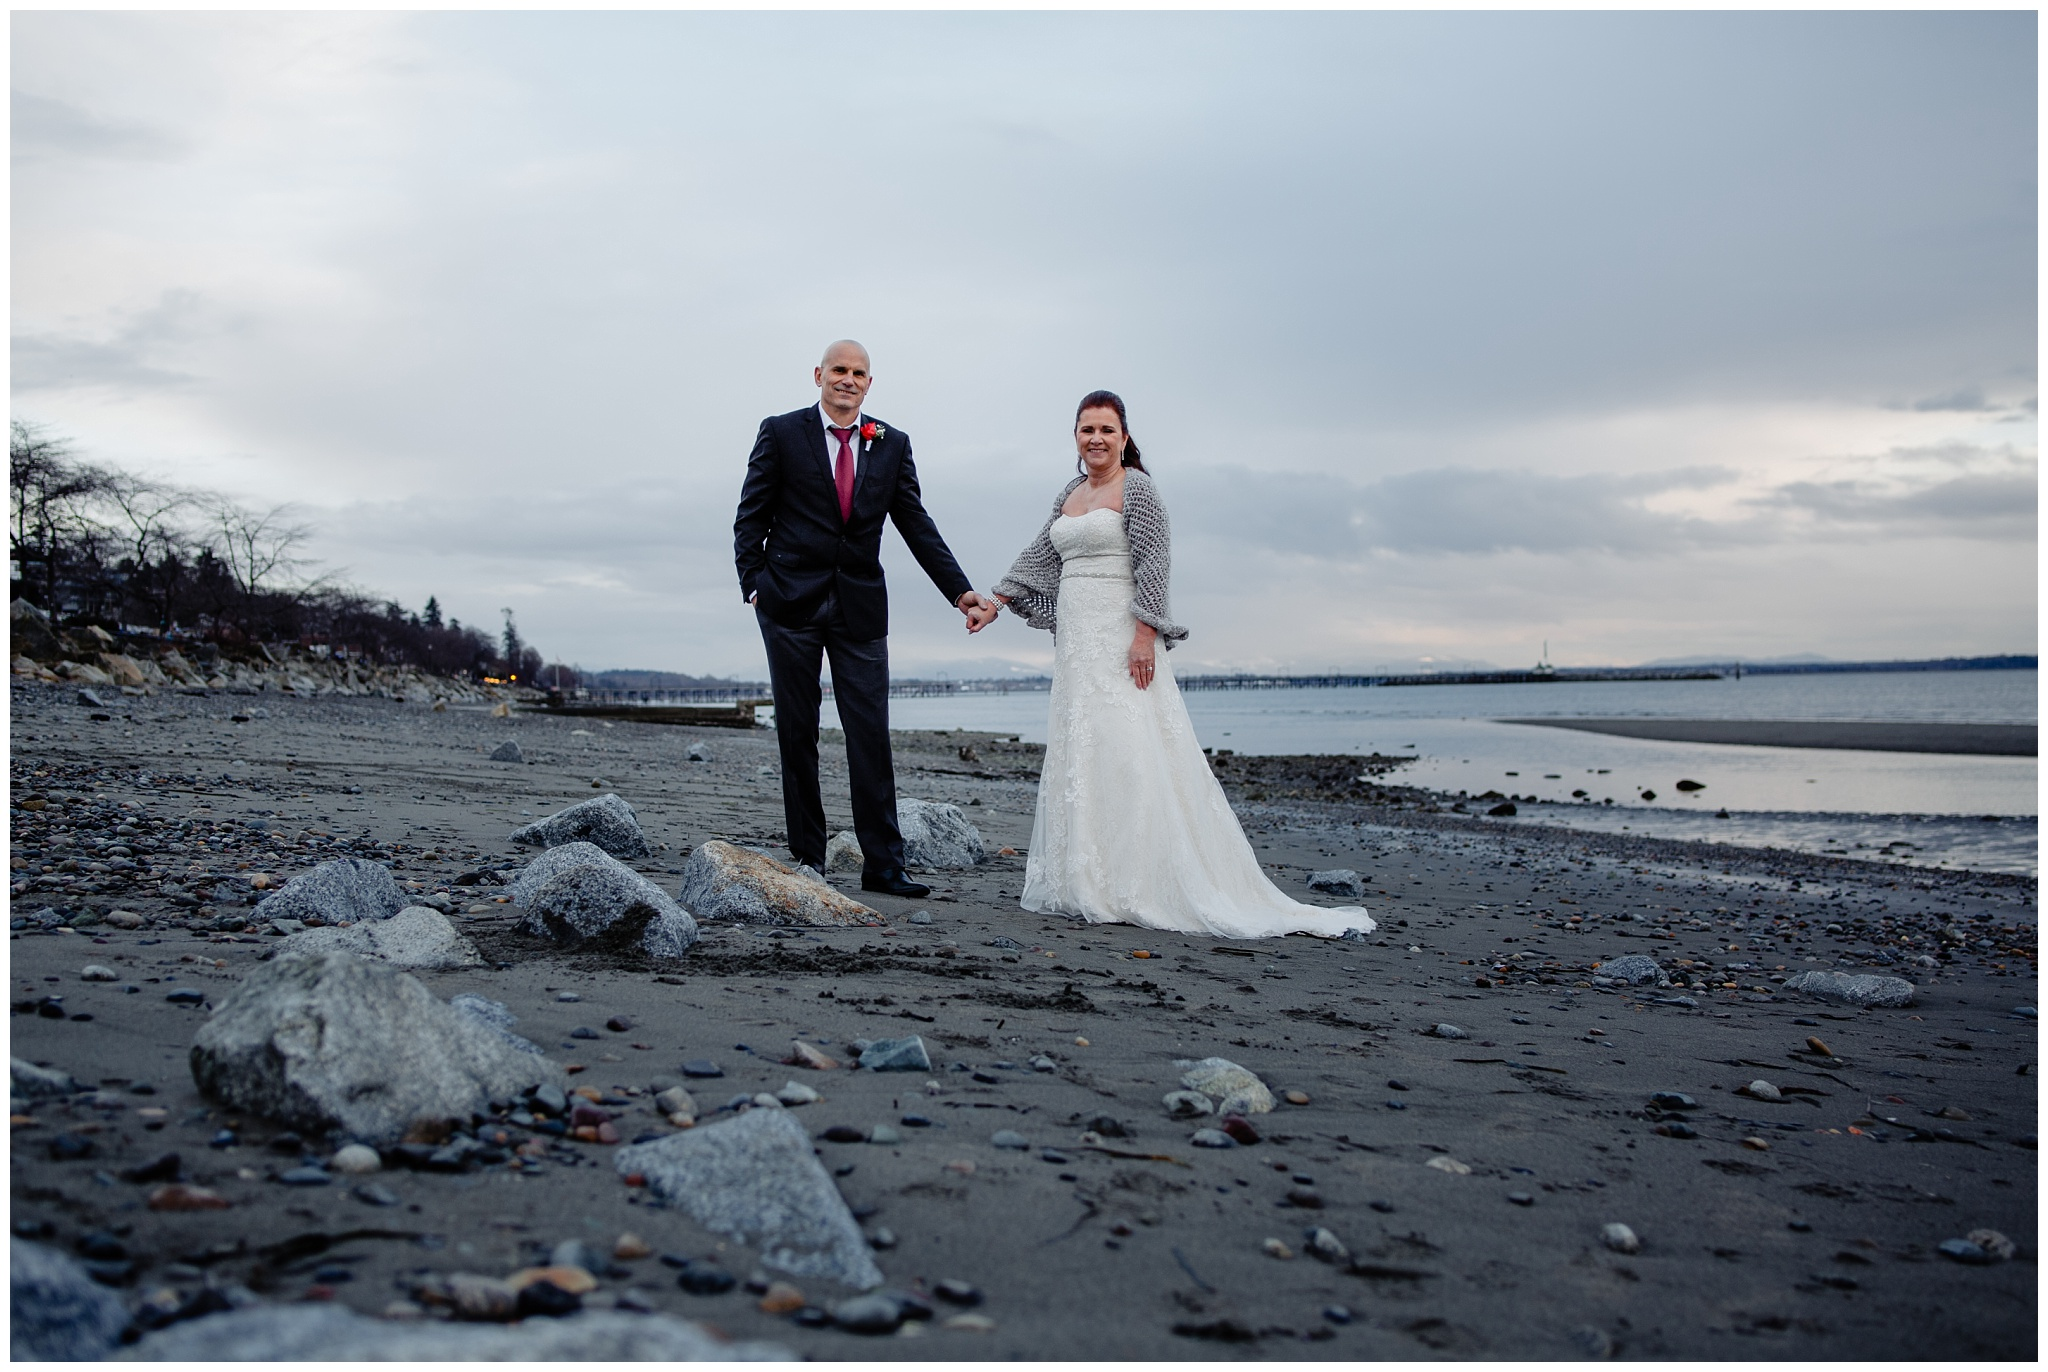 White Rock Intimate Wedding 5 Star Catering Venue Surrey BC Middle Aged Couple_0016.jpg